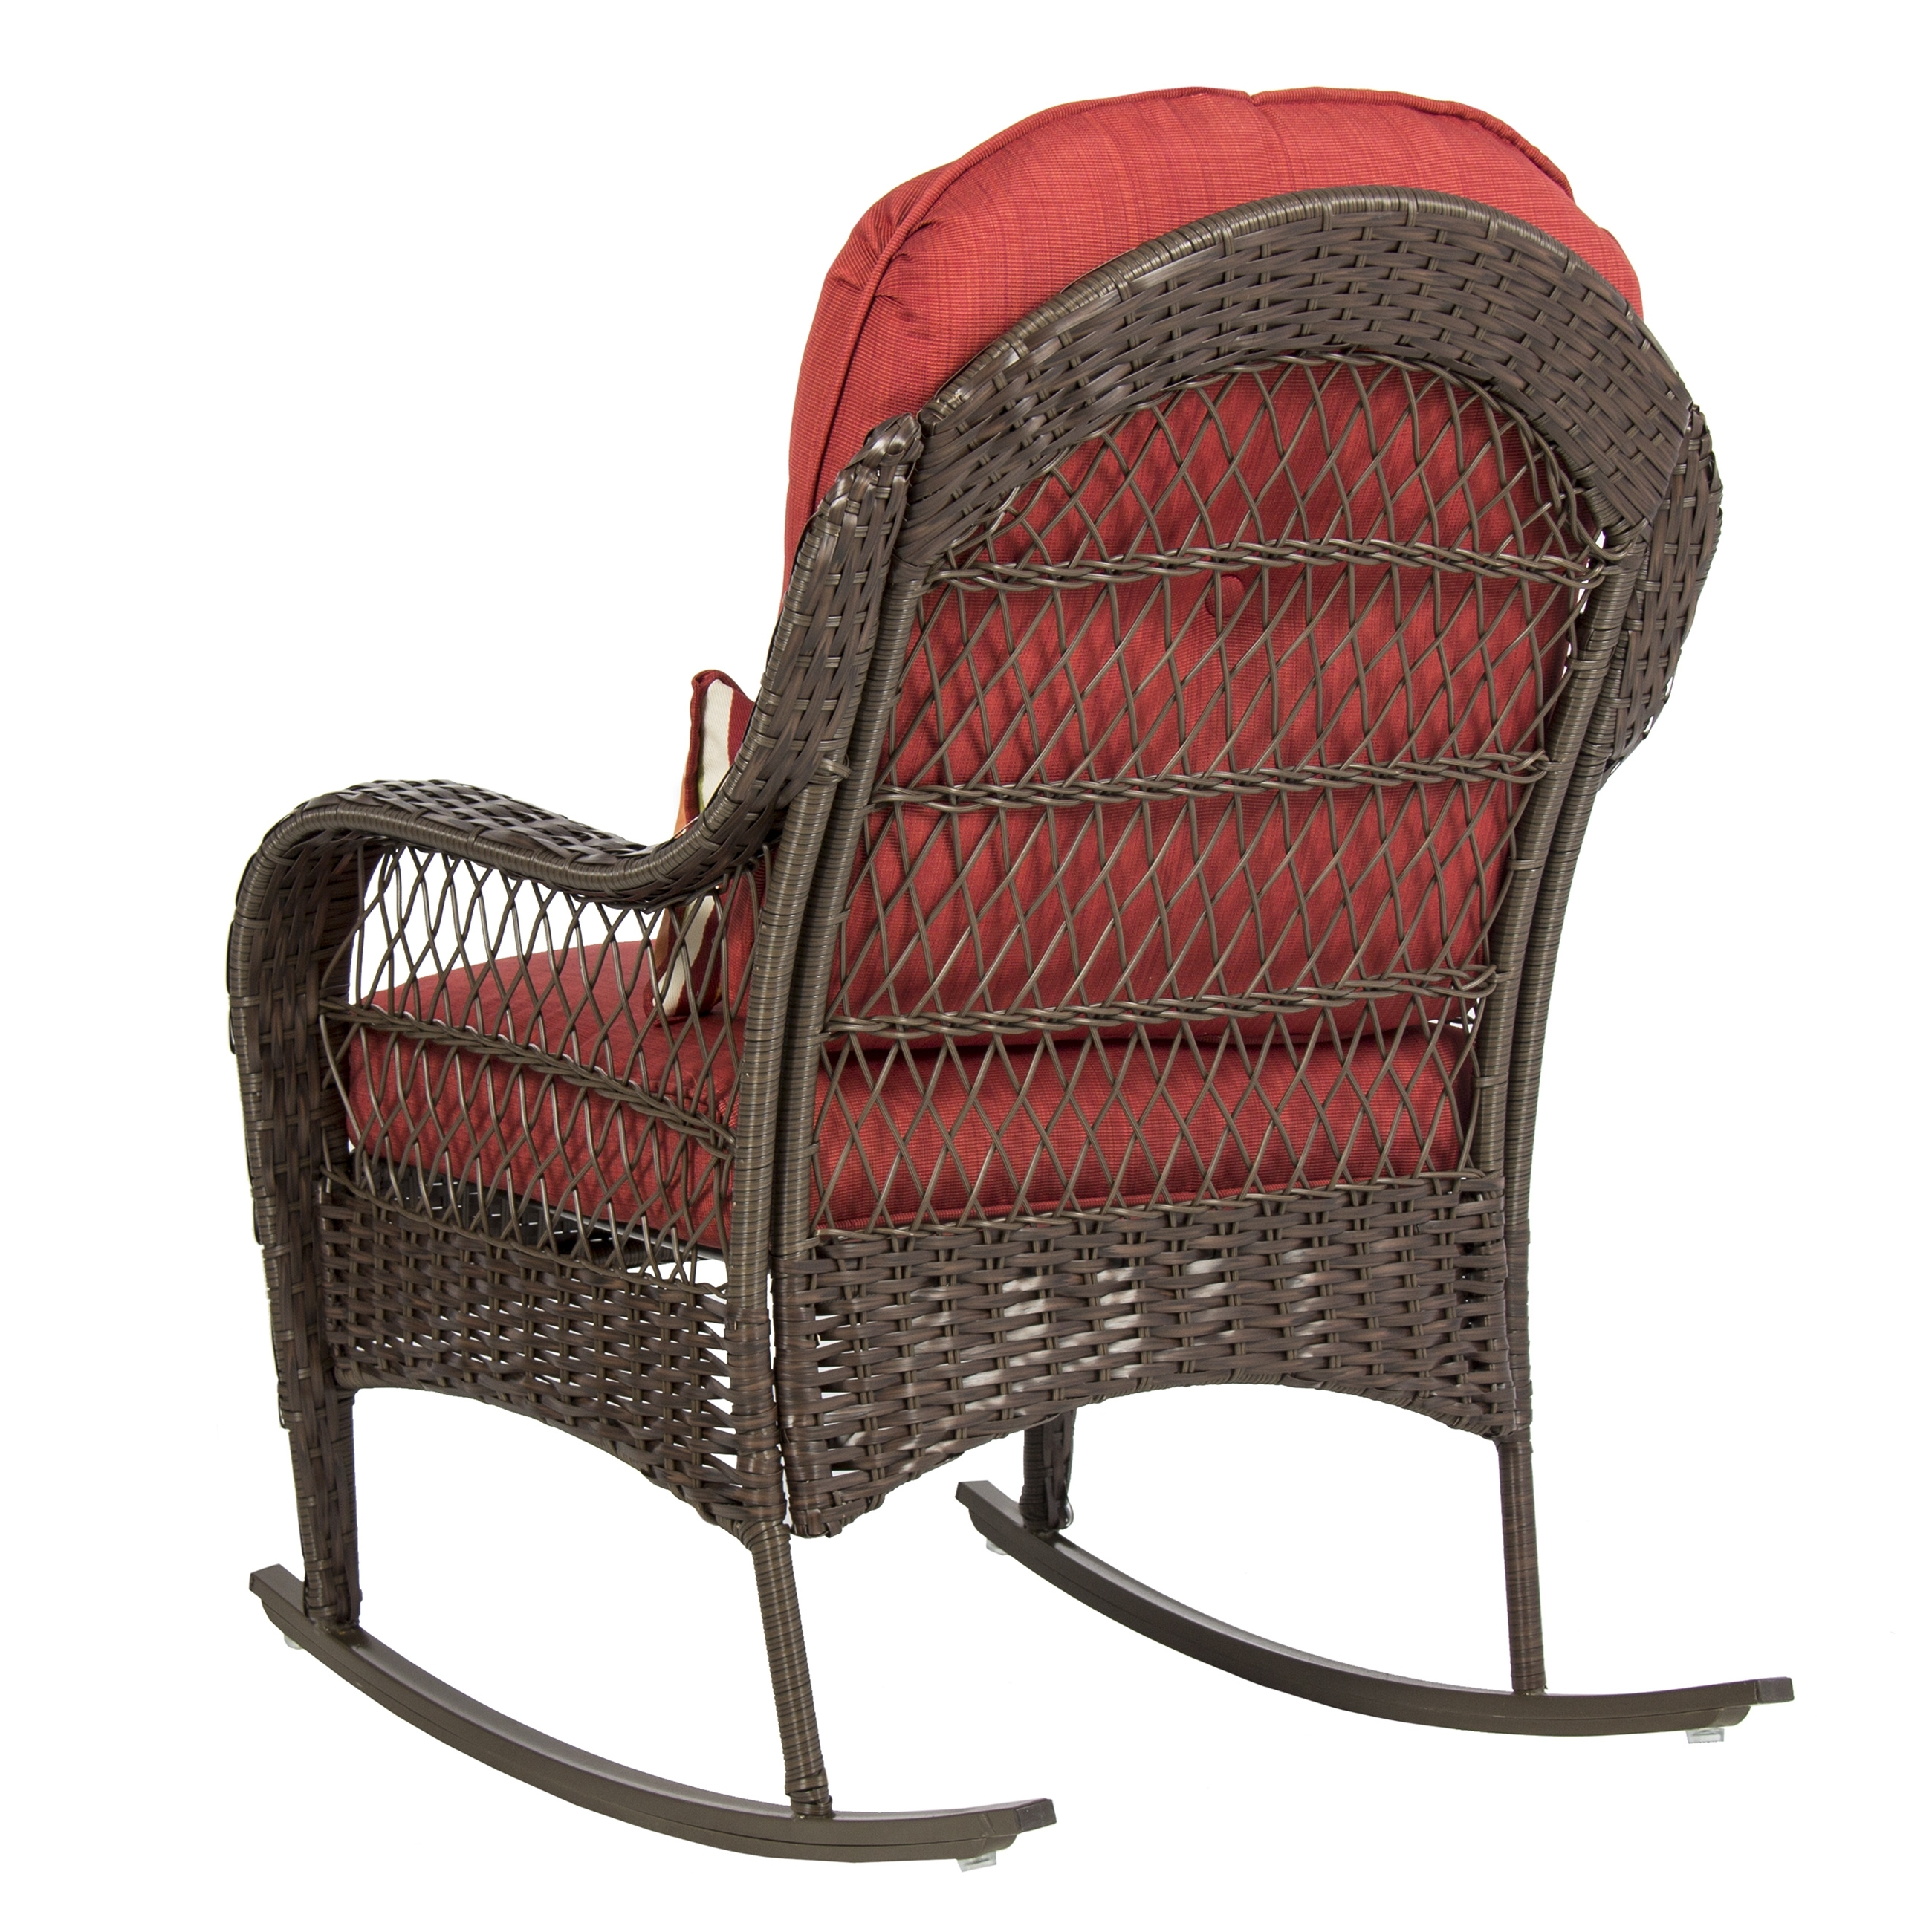 Outdoor Wicker Rocking Chairs With Cushions Within Well Known Best Choice Products Wicker Rocking Chair Patio Porch Deck Furniture (View 11 of 20)